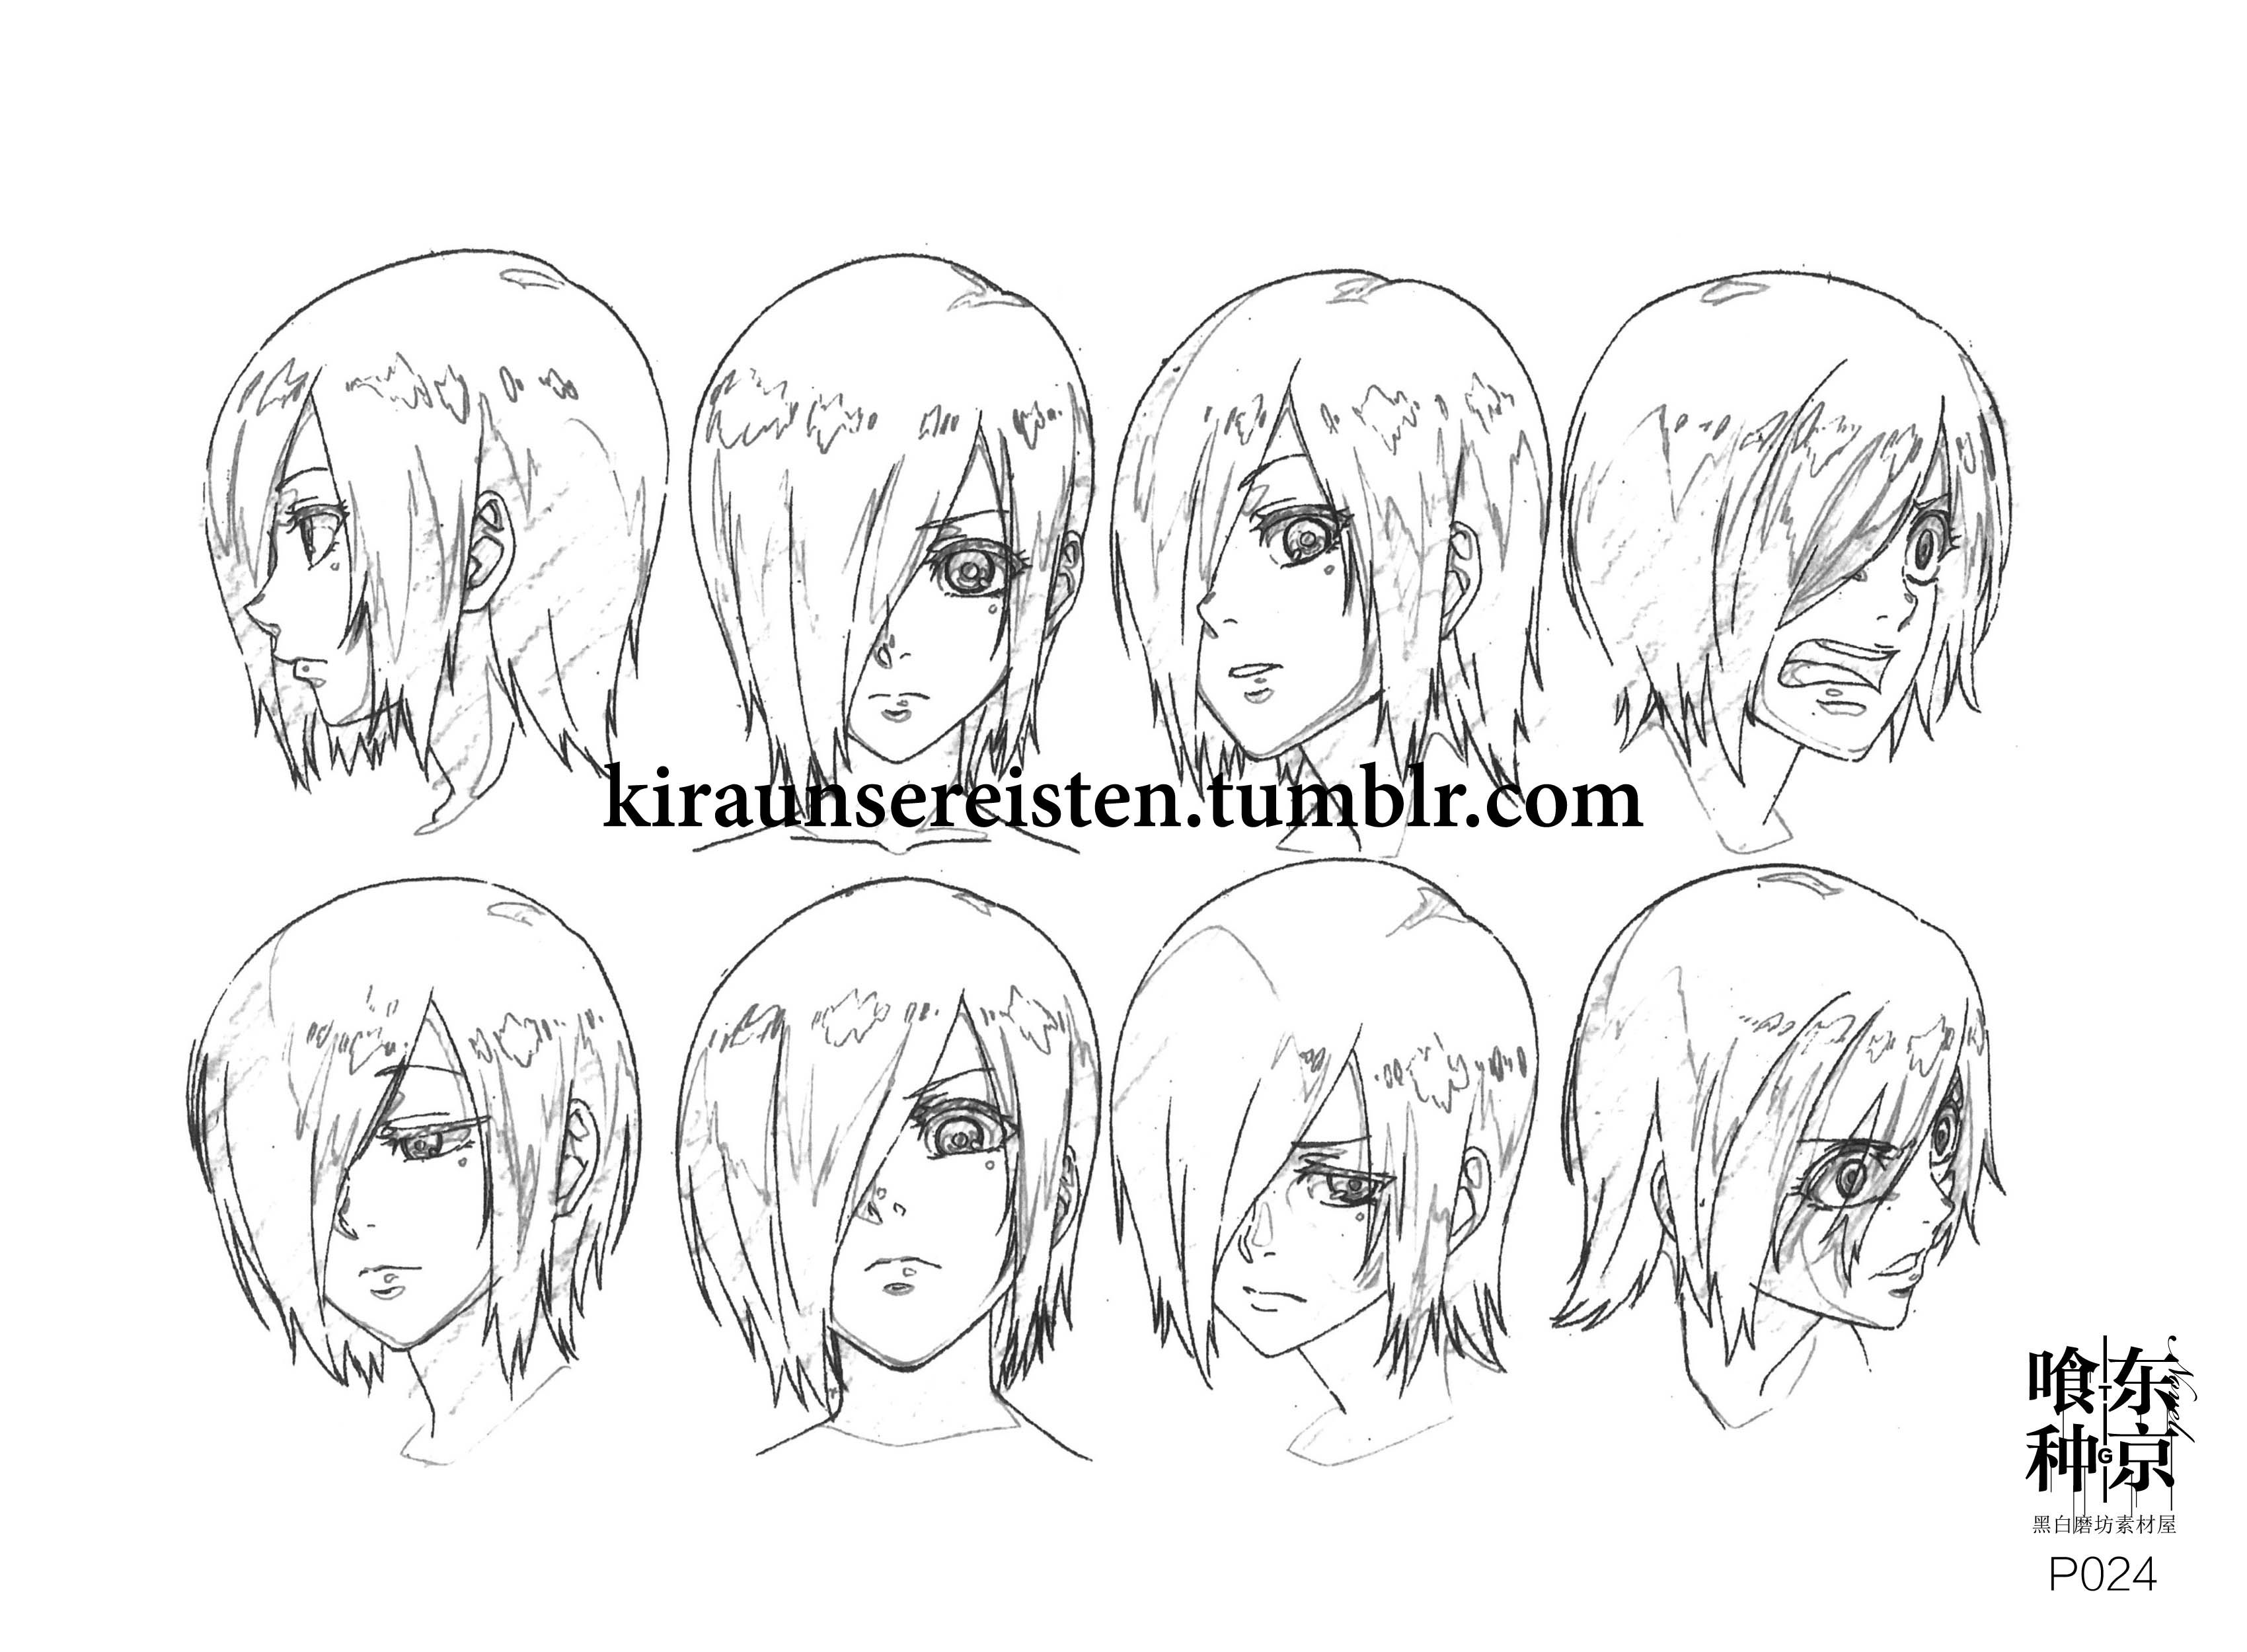 Tokyo Ghoul Settei Sheets Reference Sheet Anime Character Design Production Artworks Conceptart Tokyoghoul Anime Character Design Sketches Tutorial Ghoul